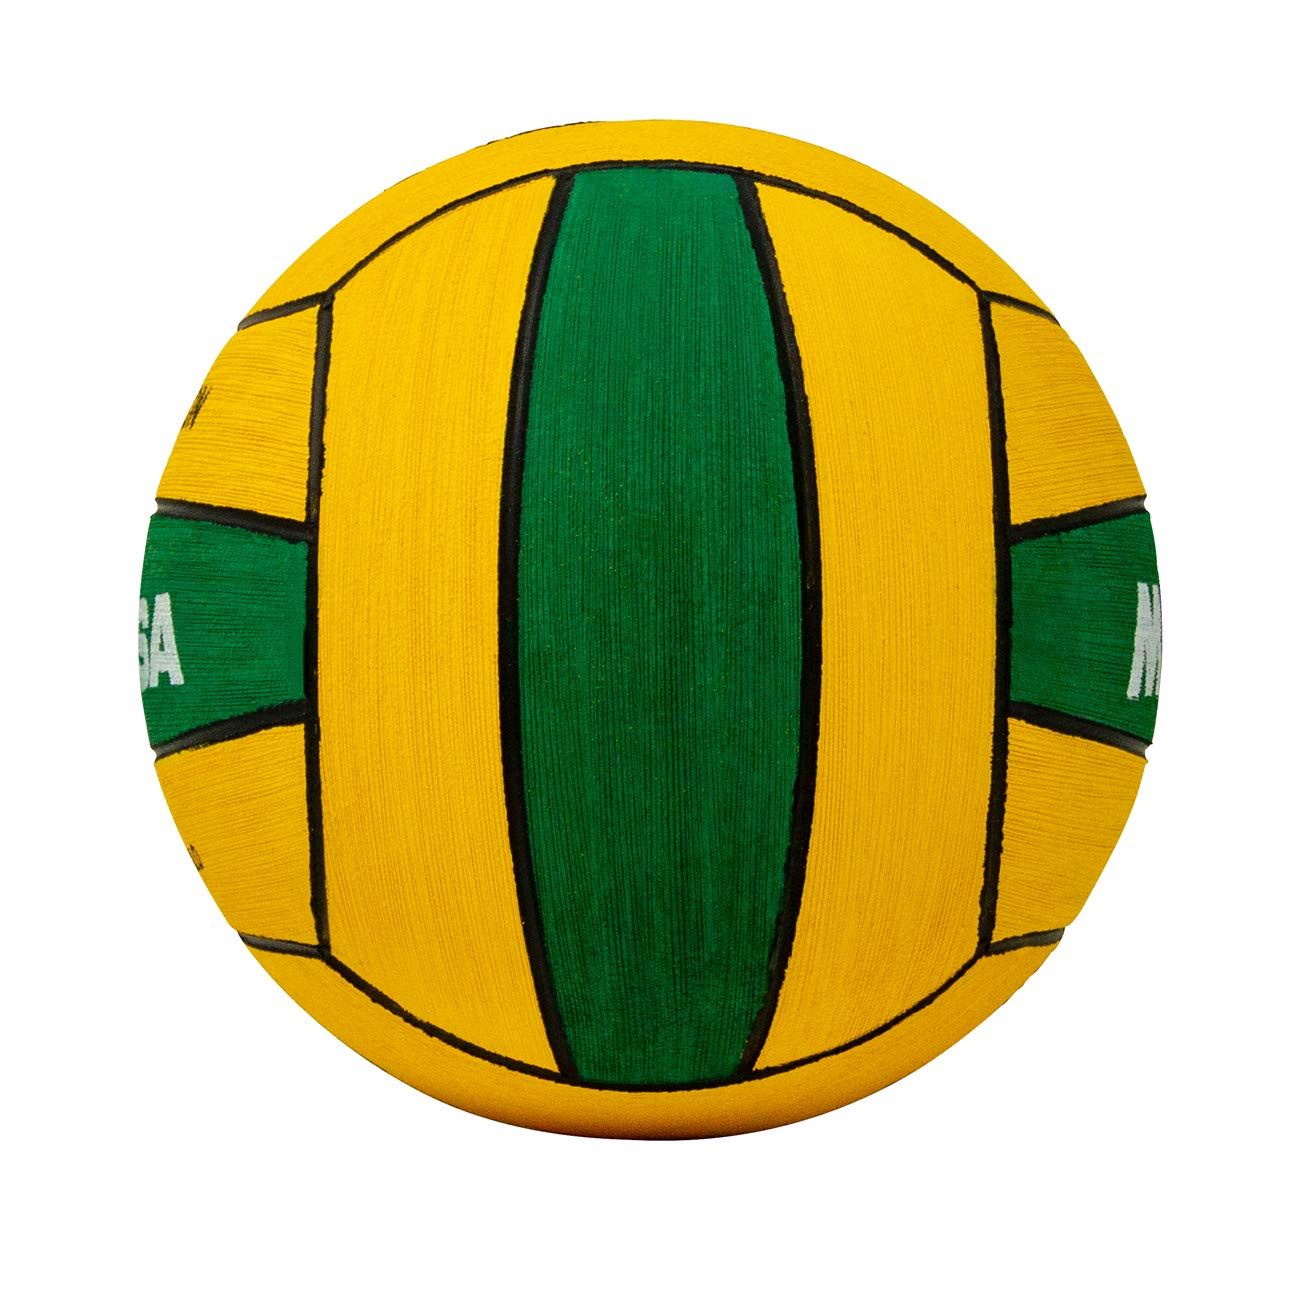 Amazon.com : Mikasa W5009GRE Competition Game Ball, Green/Yellow, Size 4 : Sports & Outdoors